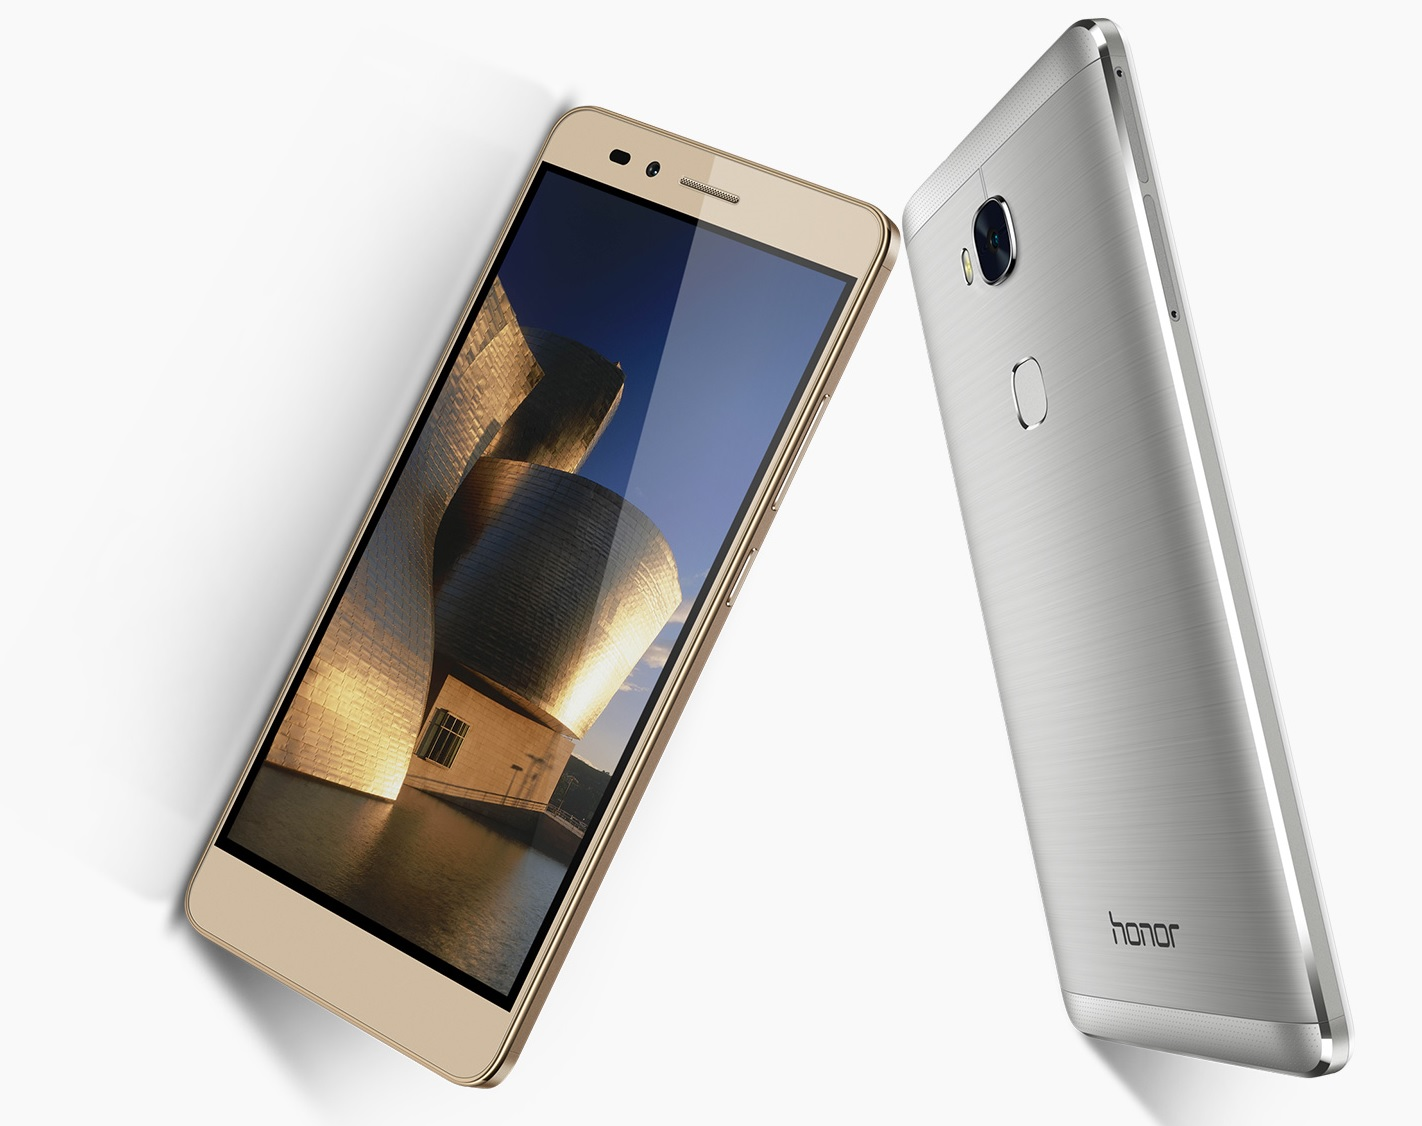 Honor 5X  and Holly 2 Plus Launched in India at Rs. 12,999 and 8,499